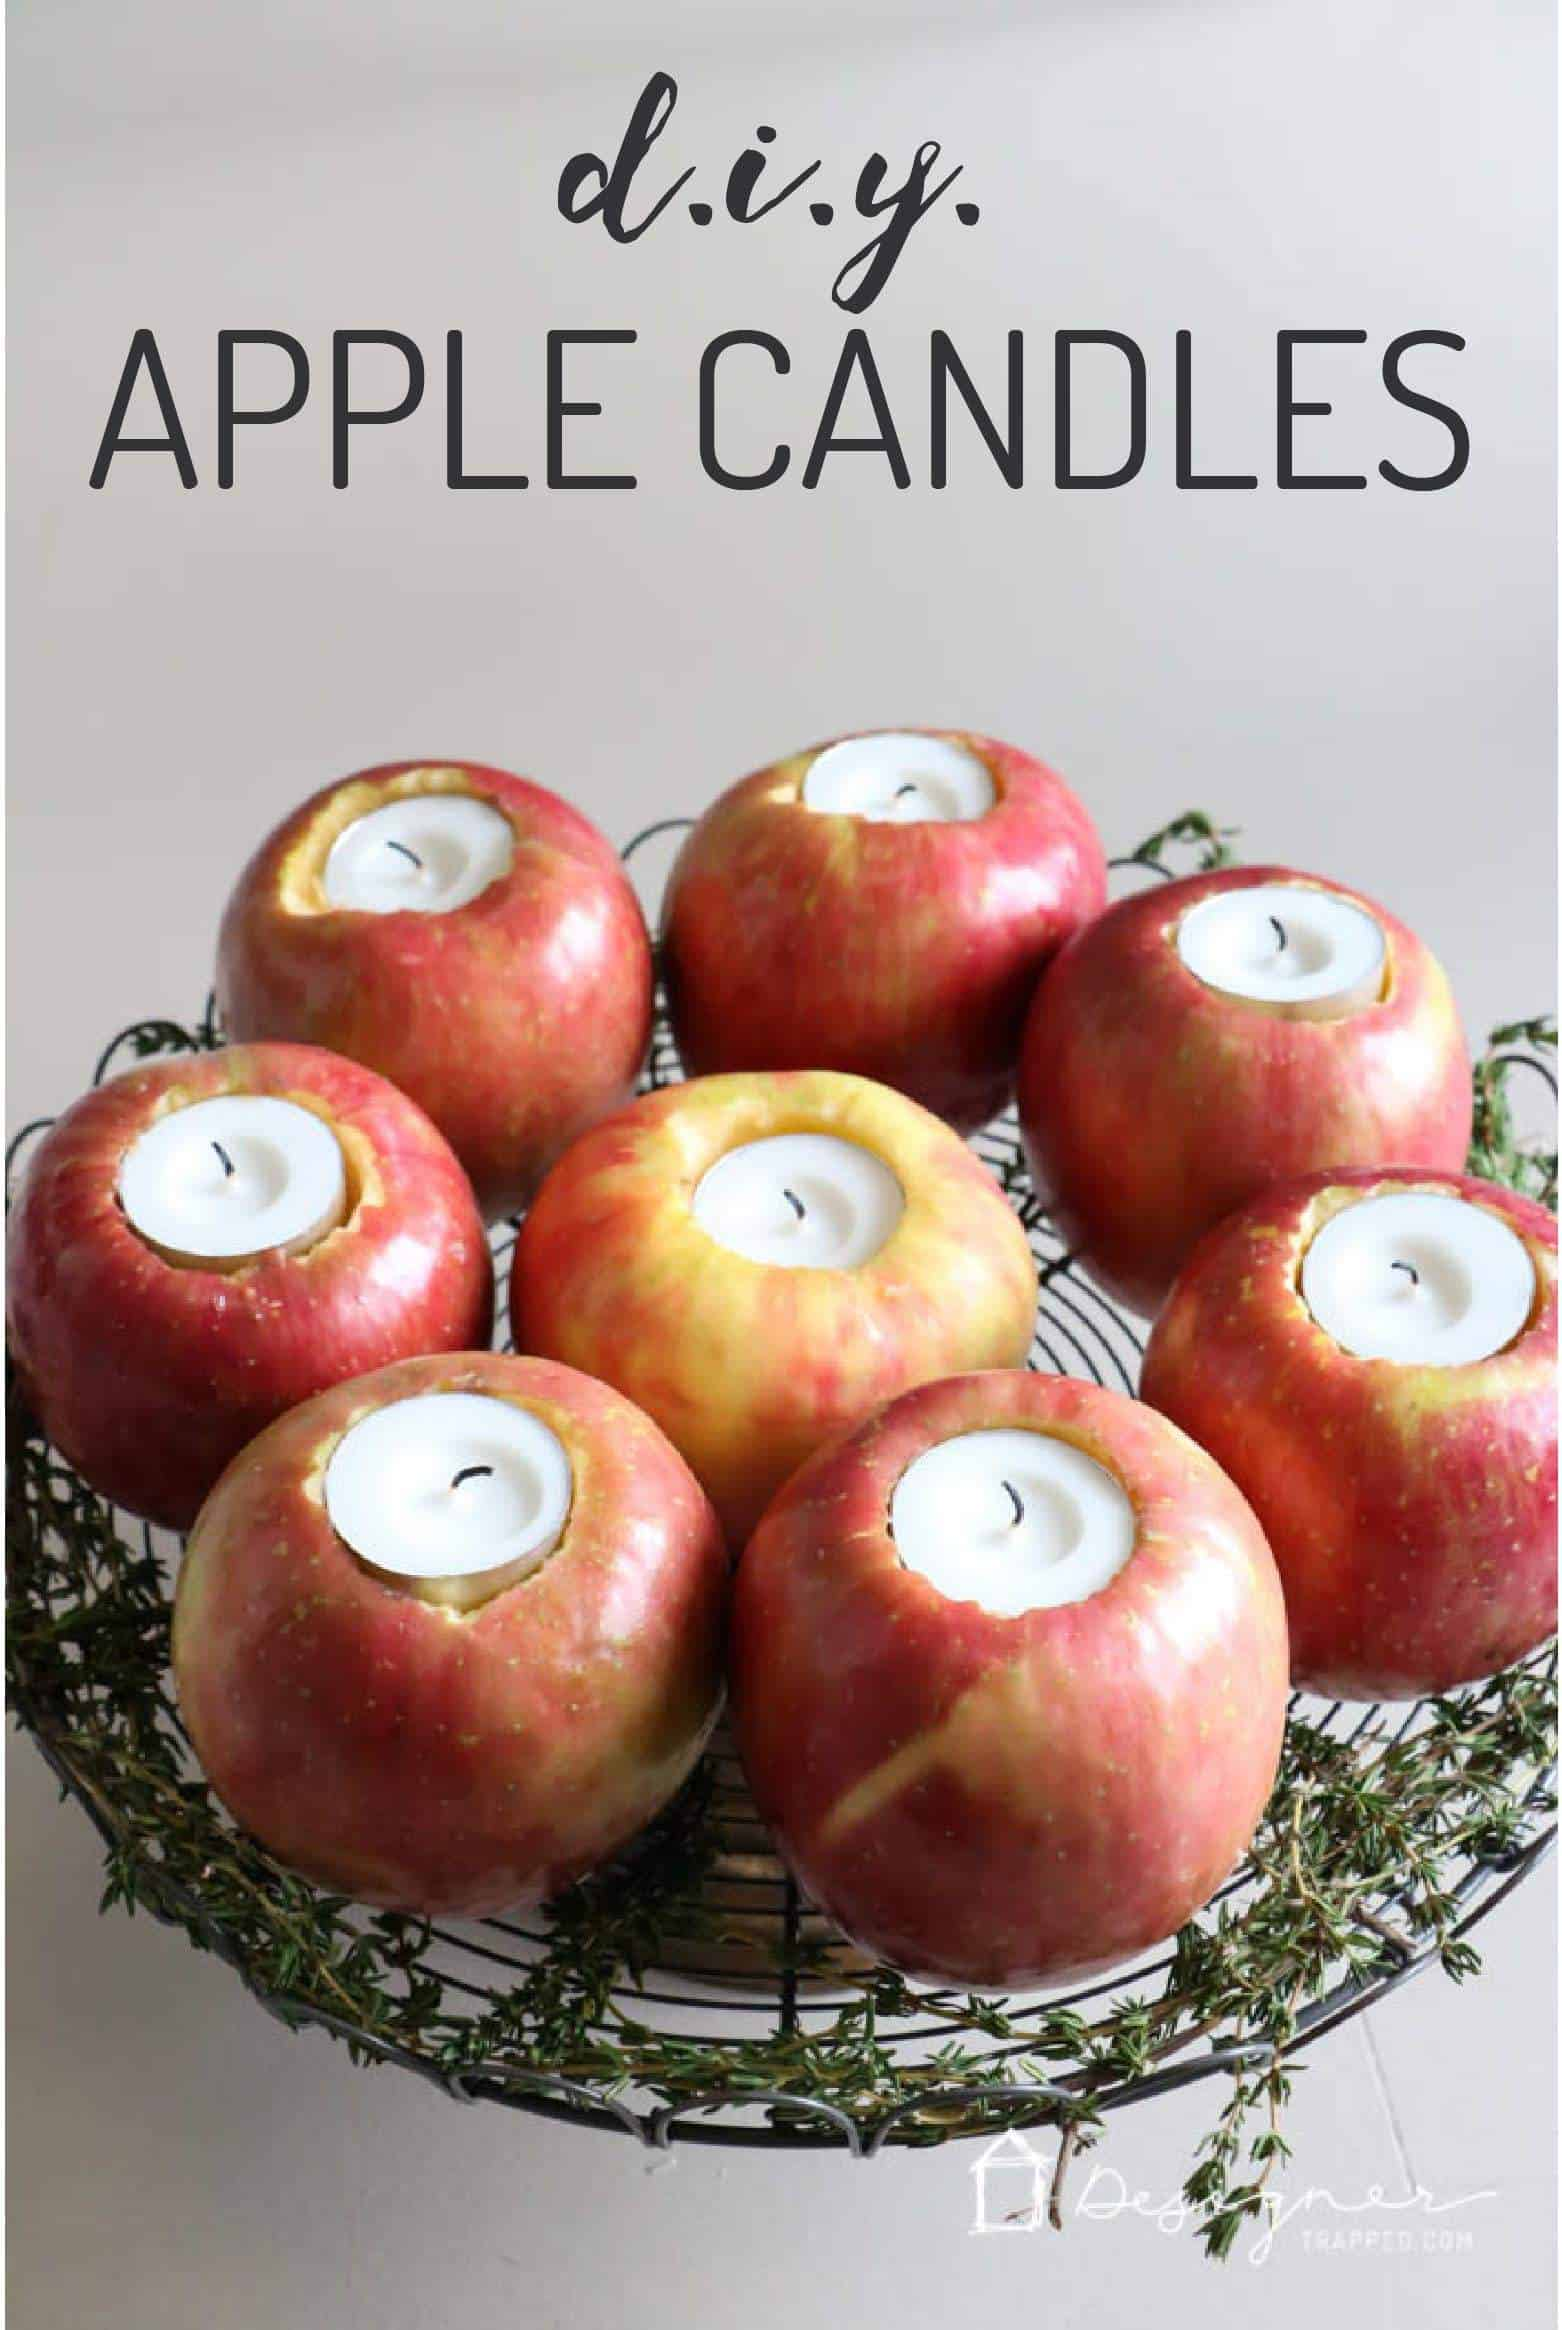 Diy apple candles